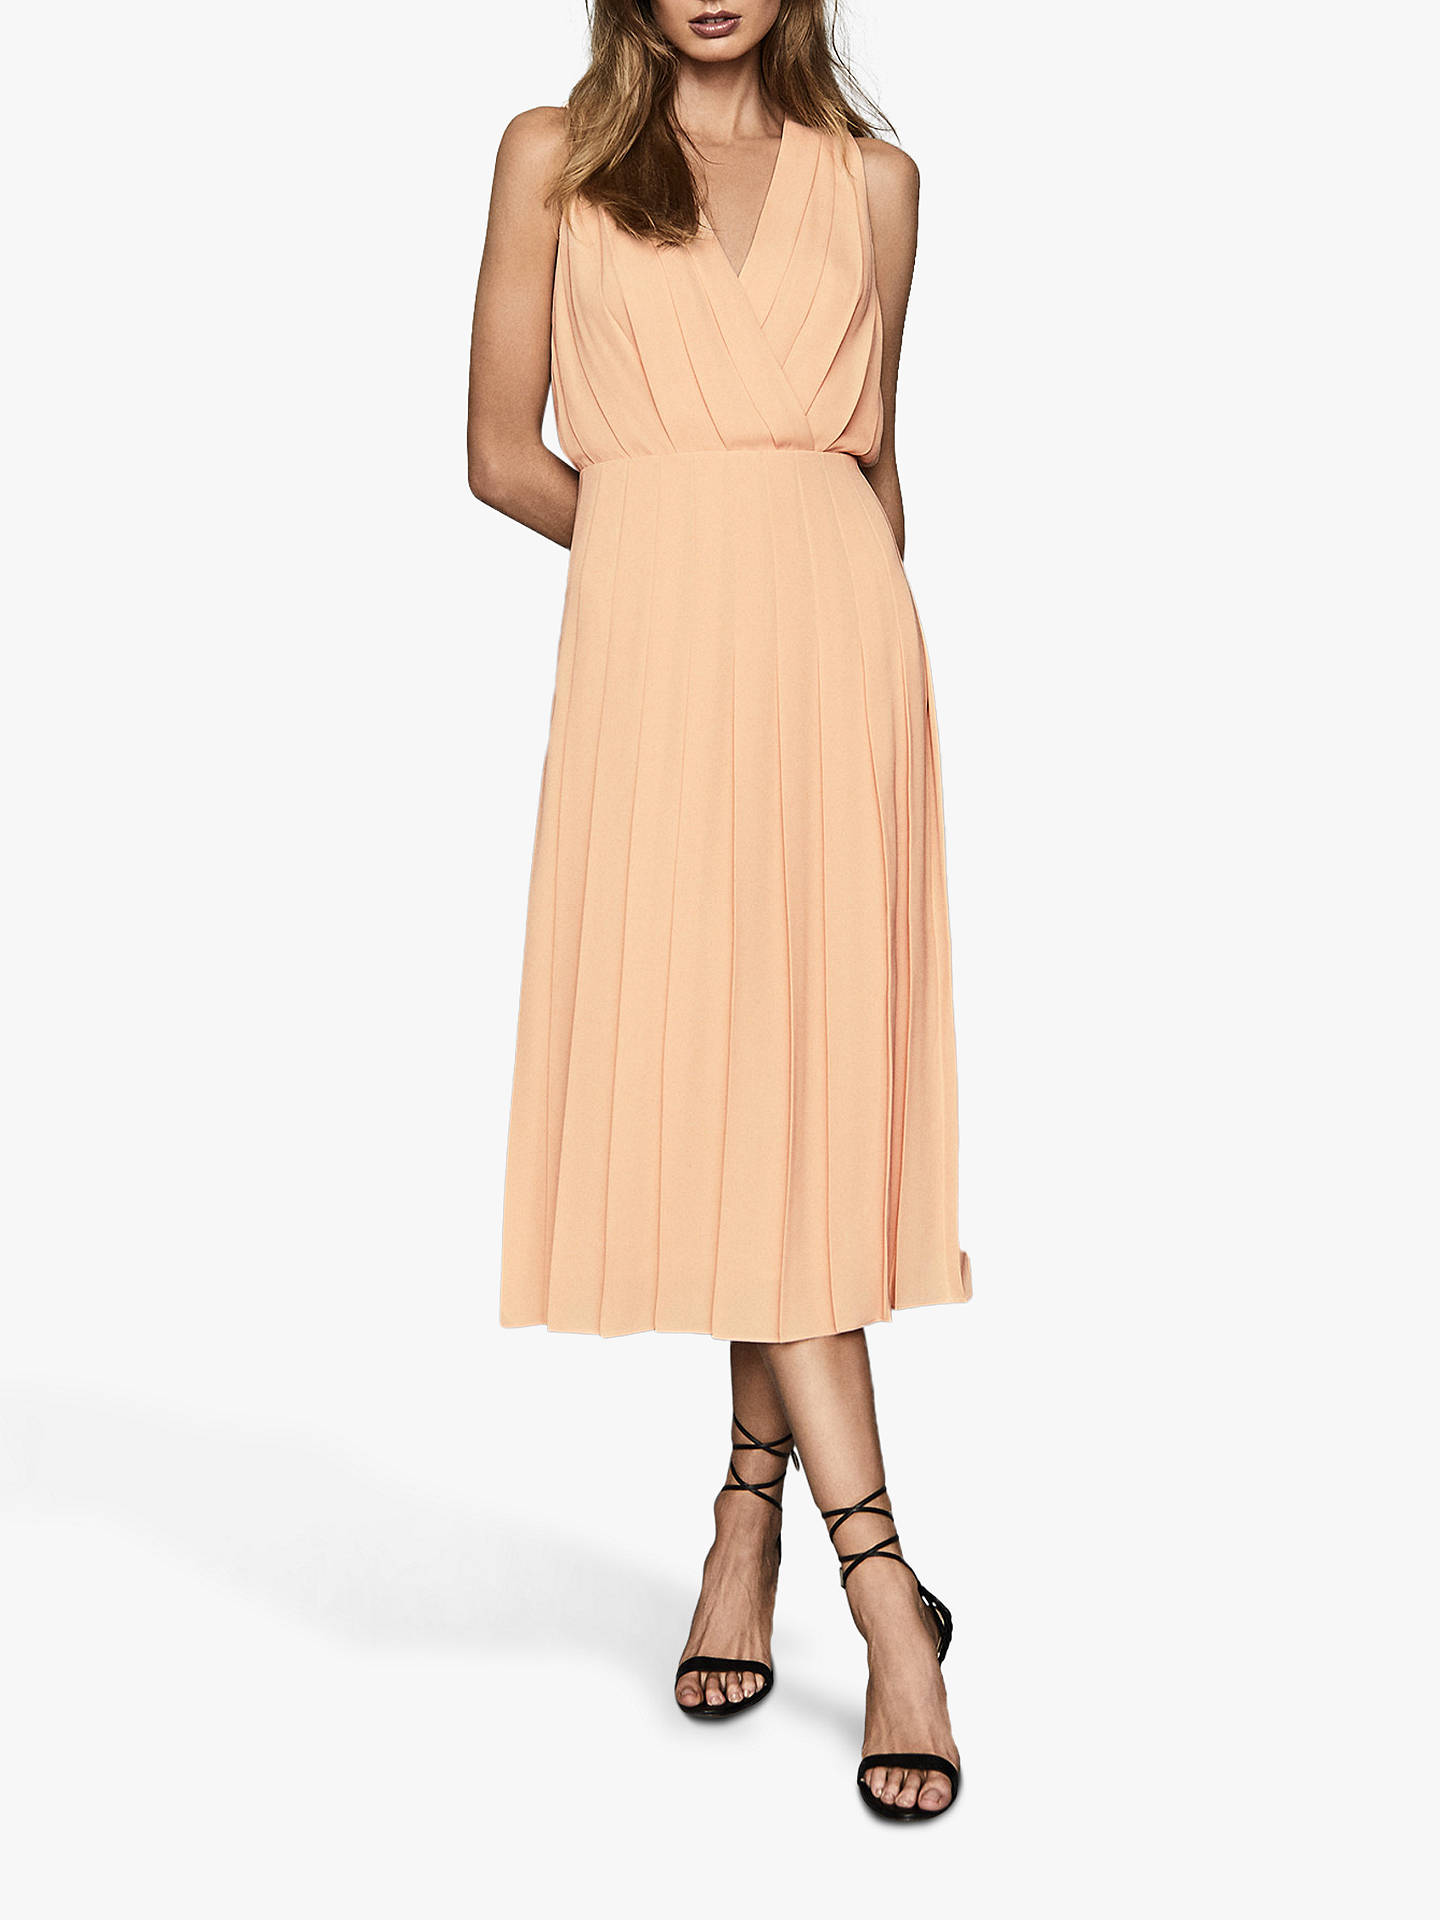 Reiss Mariona Pleated Midi Dress, Nude by Reiss